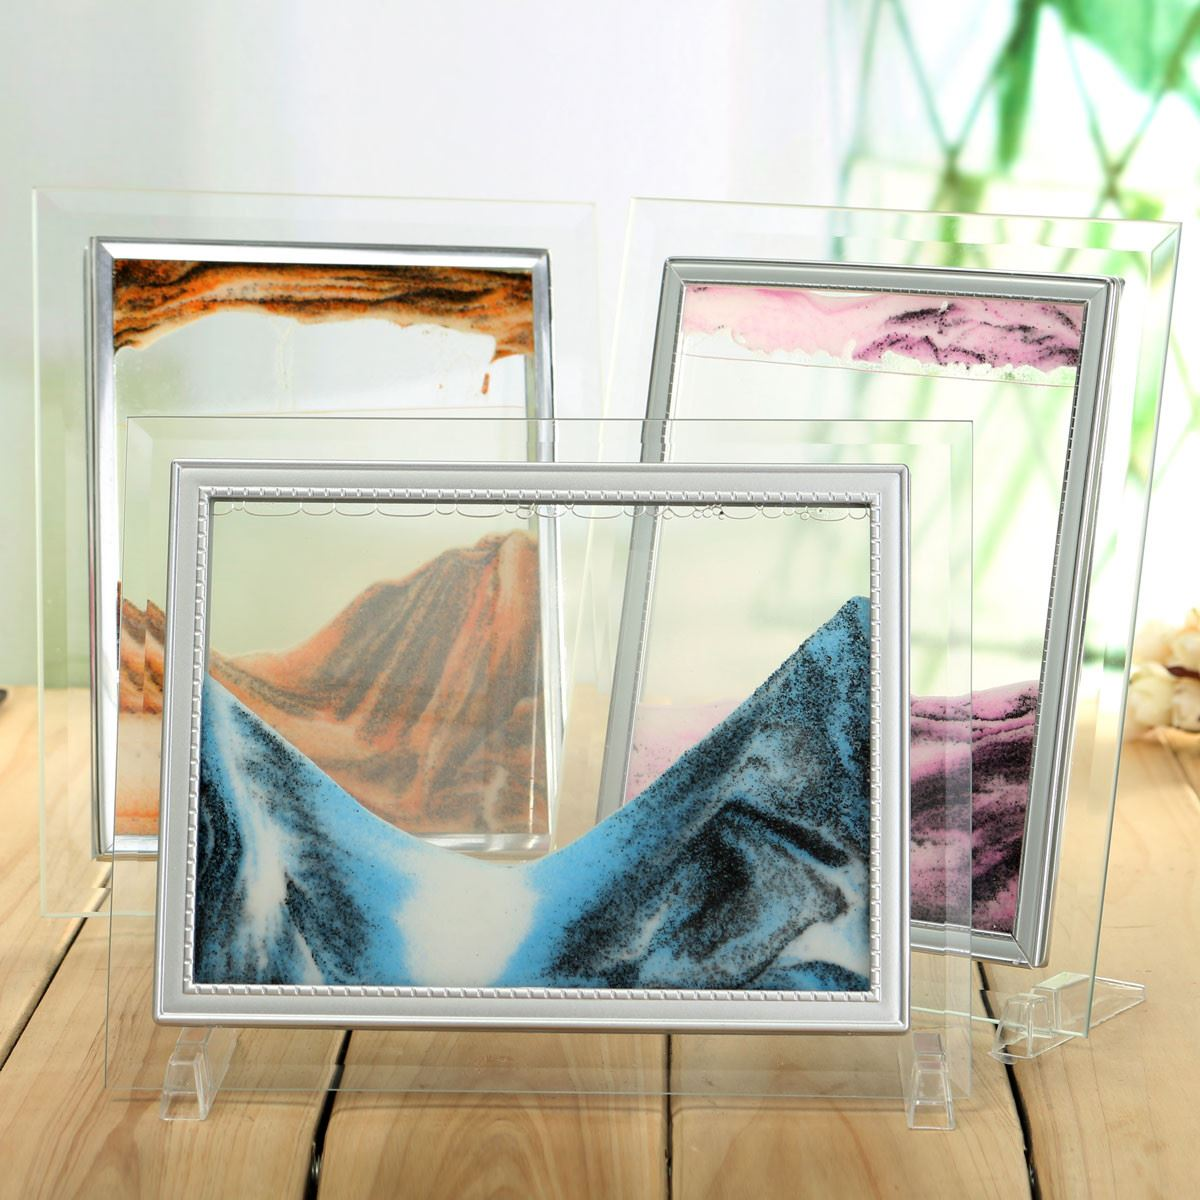 Home Office Desk Table Holder Novelty Picture Moving Sand Glass Birthday Gift Decor Landscape Scenery Flowing<br><br>Aliexpress